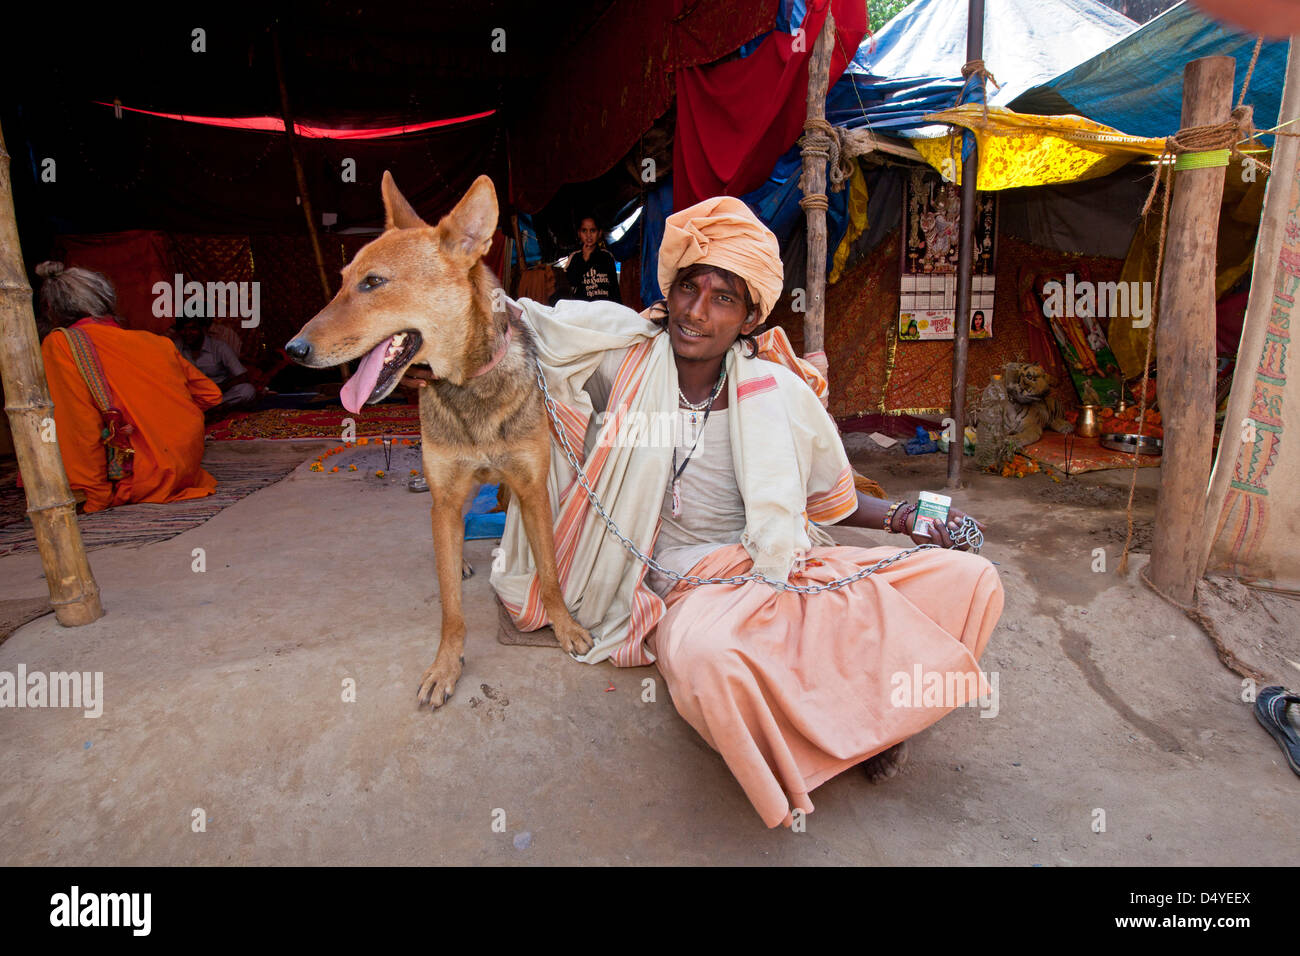 Hindu sadhus sit with their dogs at their tents during the Kumbh Mela, Haridwar, India. - Stock Image